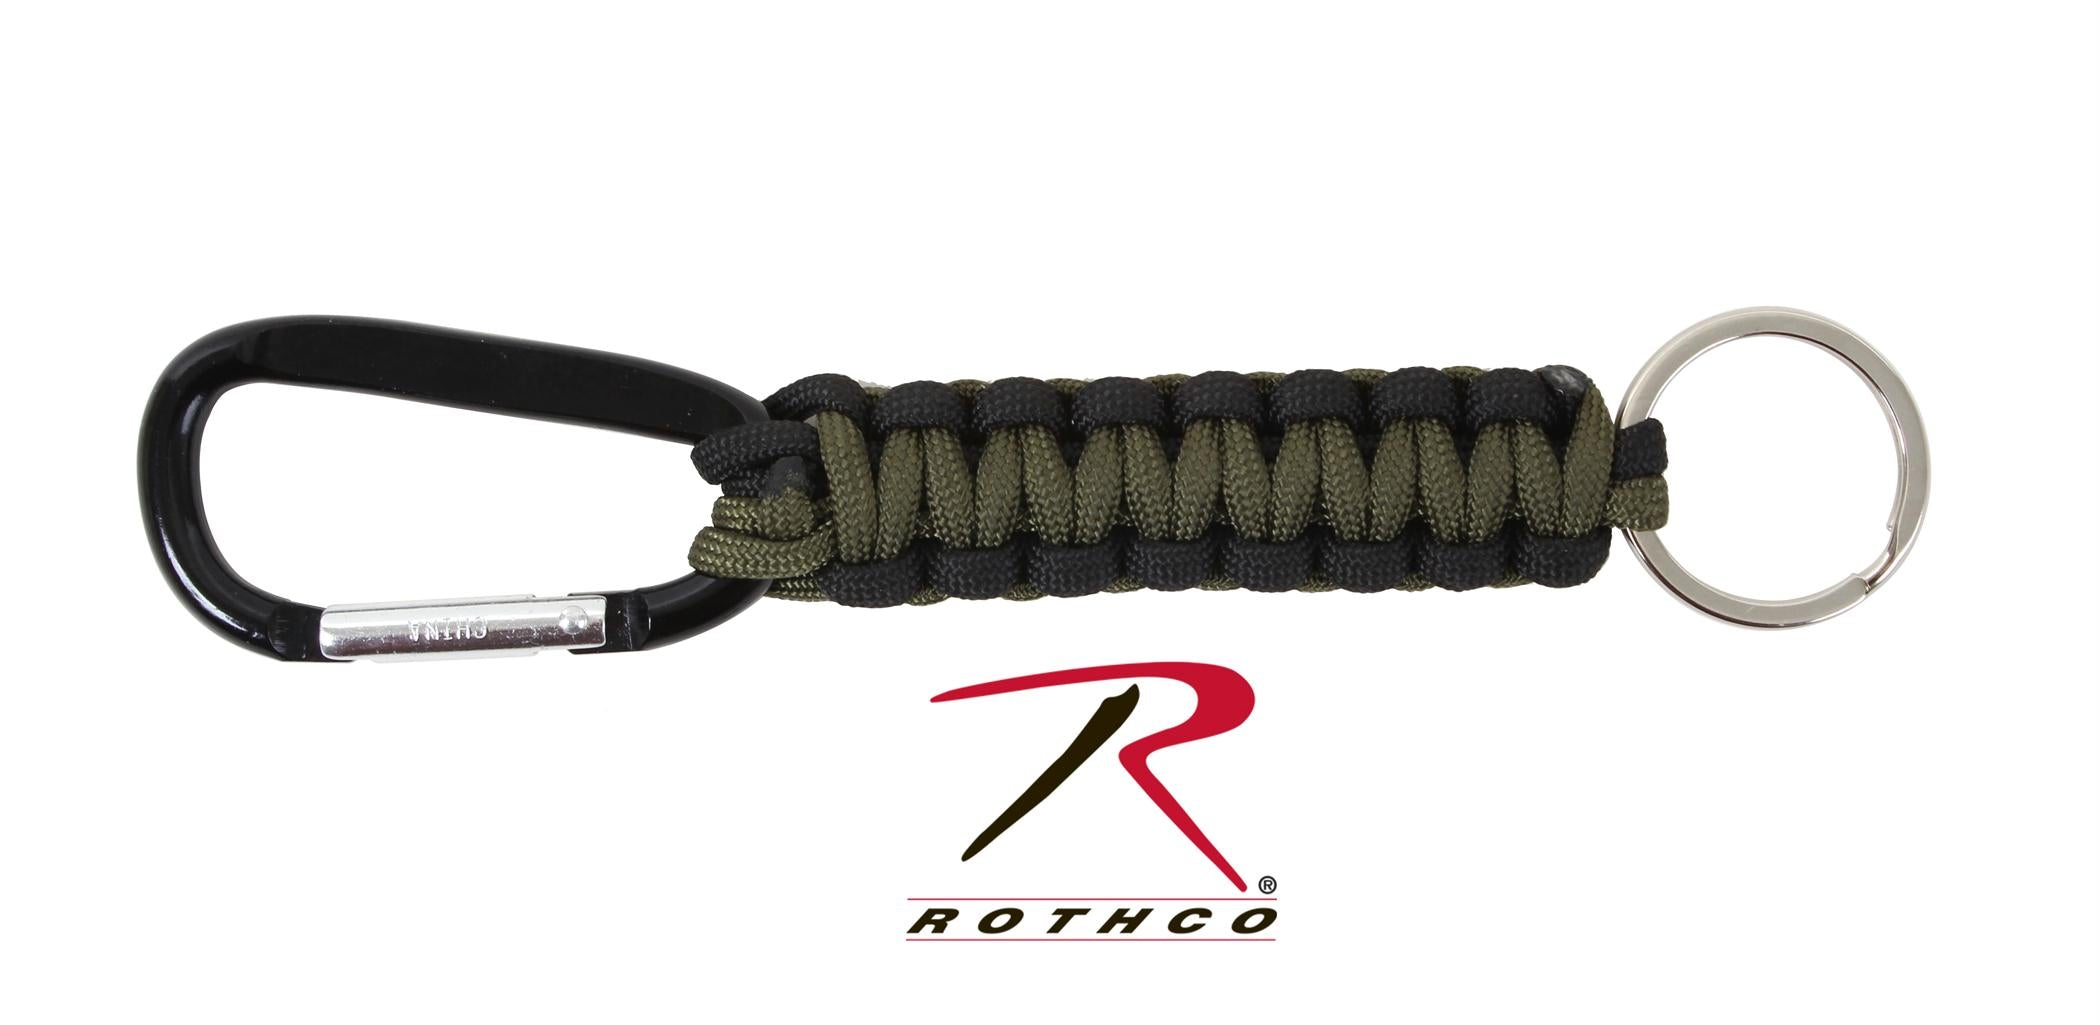 Rothco Paracord Keychain with Carabiner - Olive Drab / Black